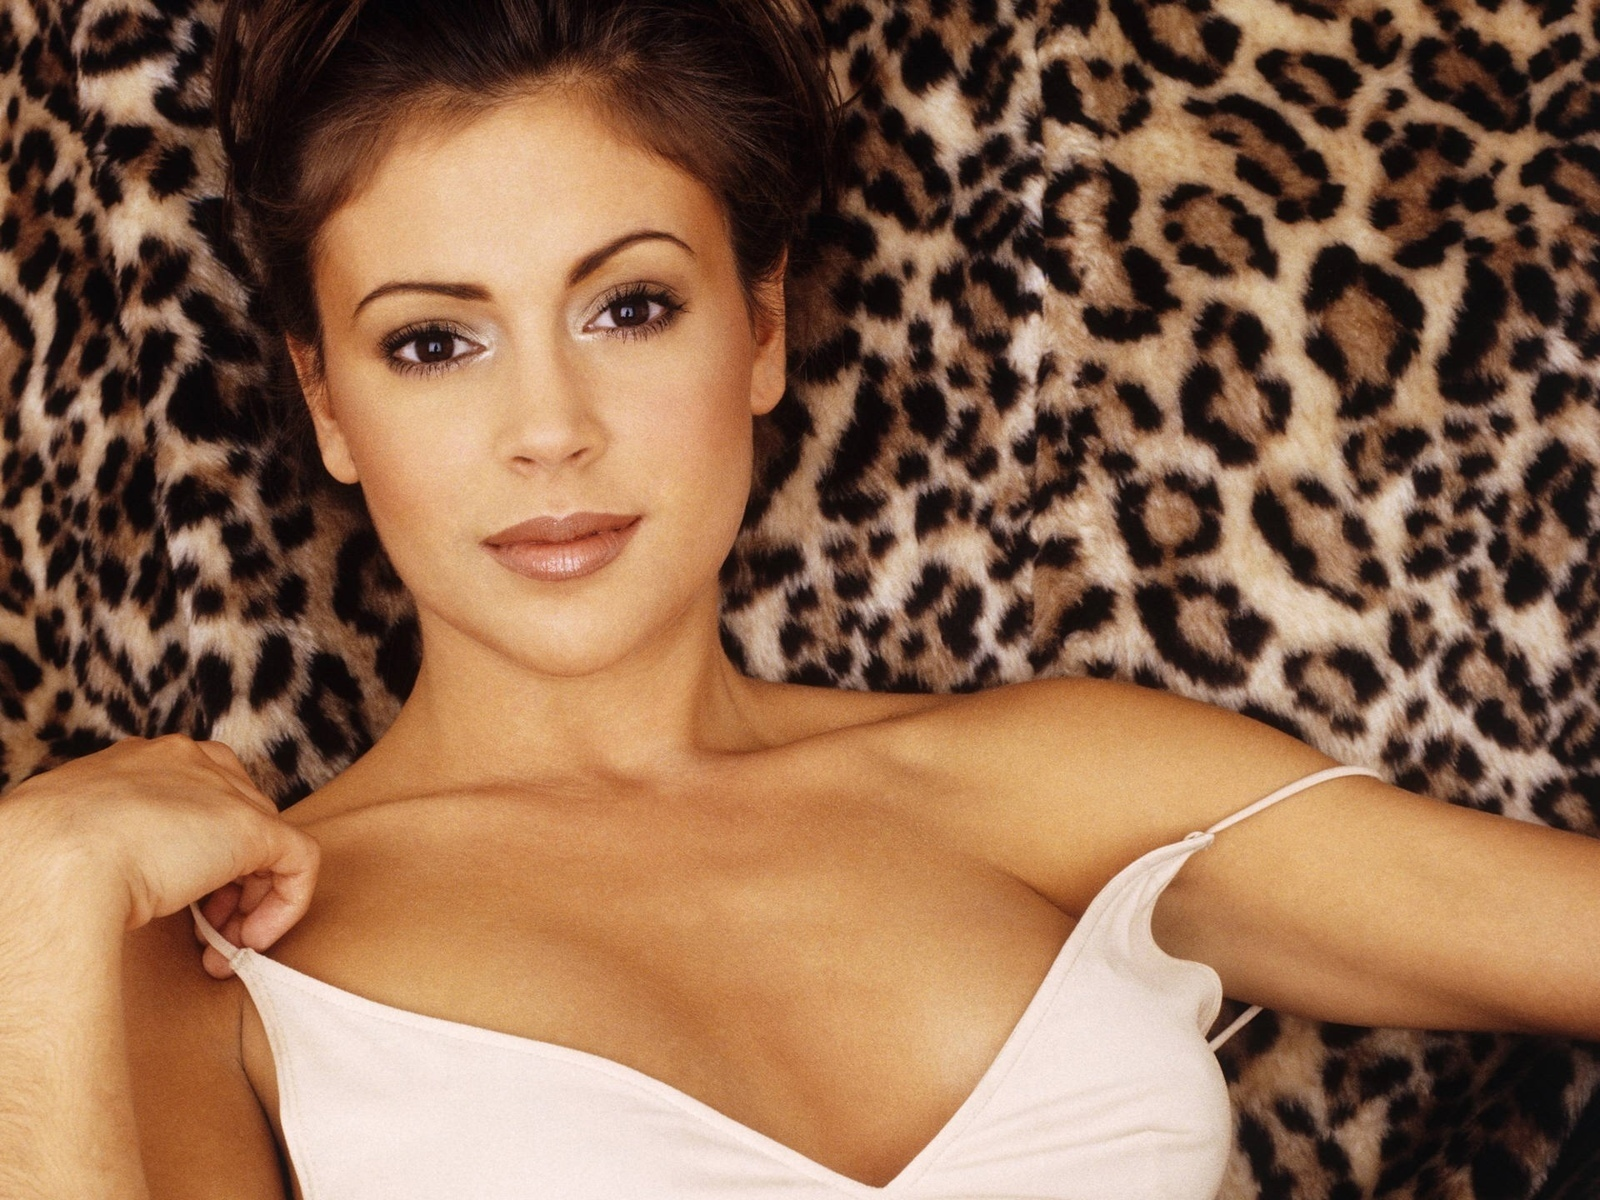 alyssa milano celebrities - photo #17